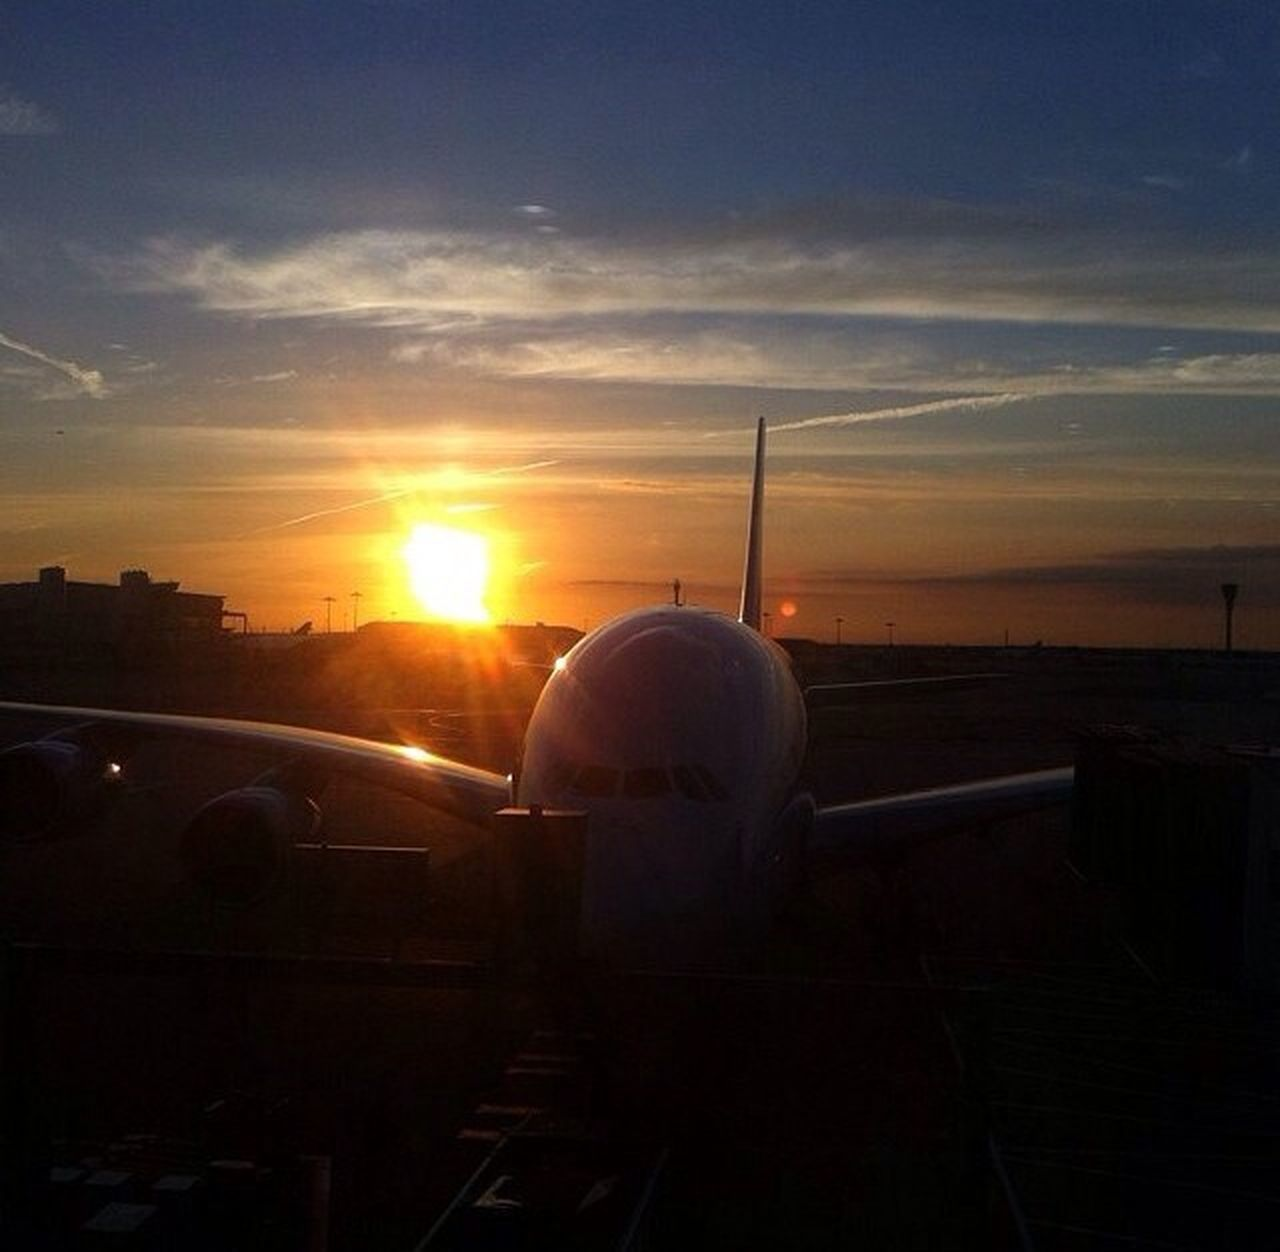 sunset, sky, sun, transportation, airplane, no people, air vehicle, travel, sunlight, outdoors, nature, day